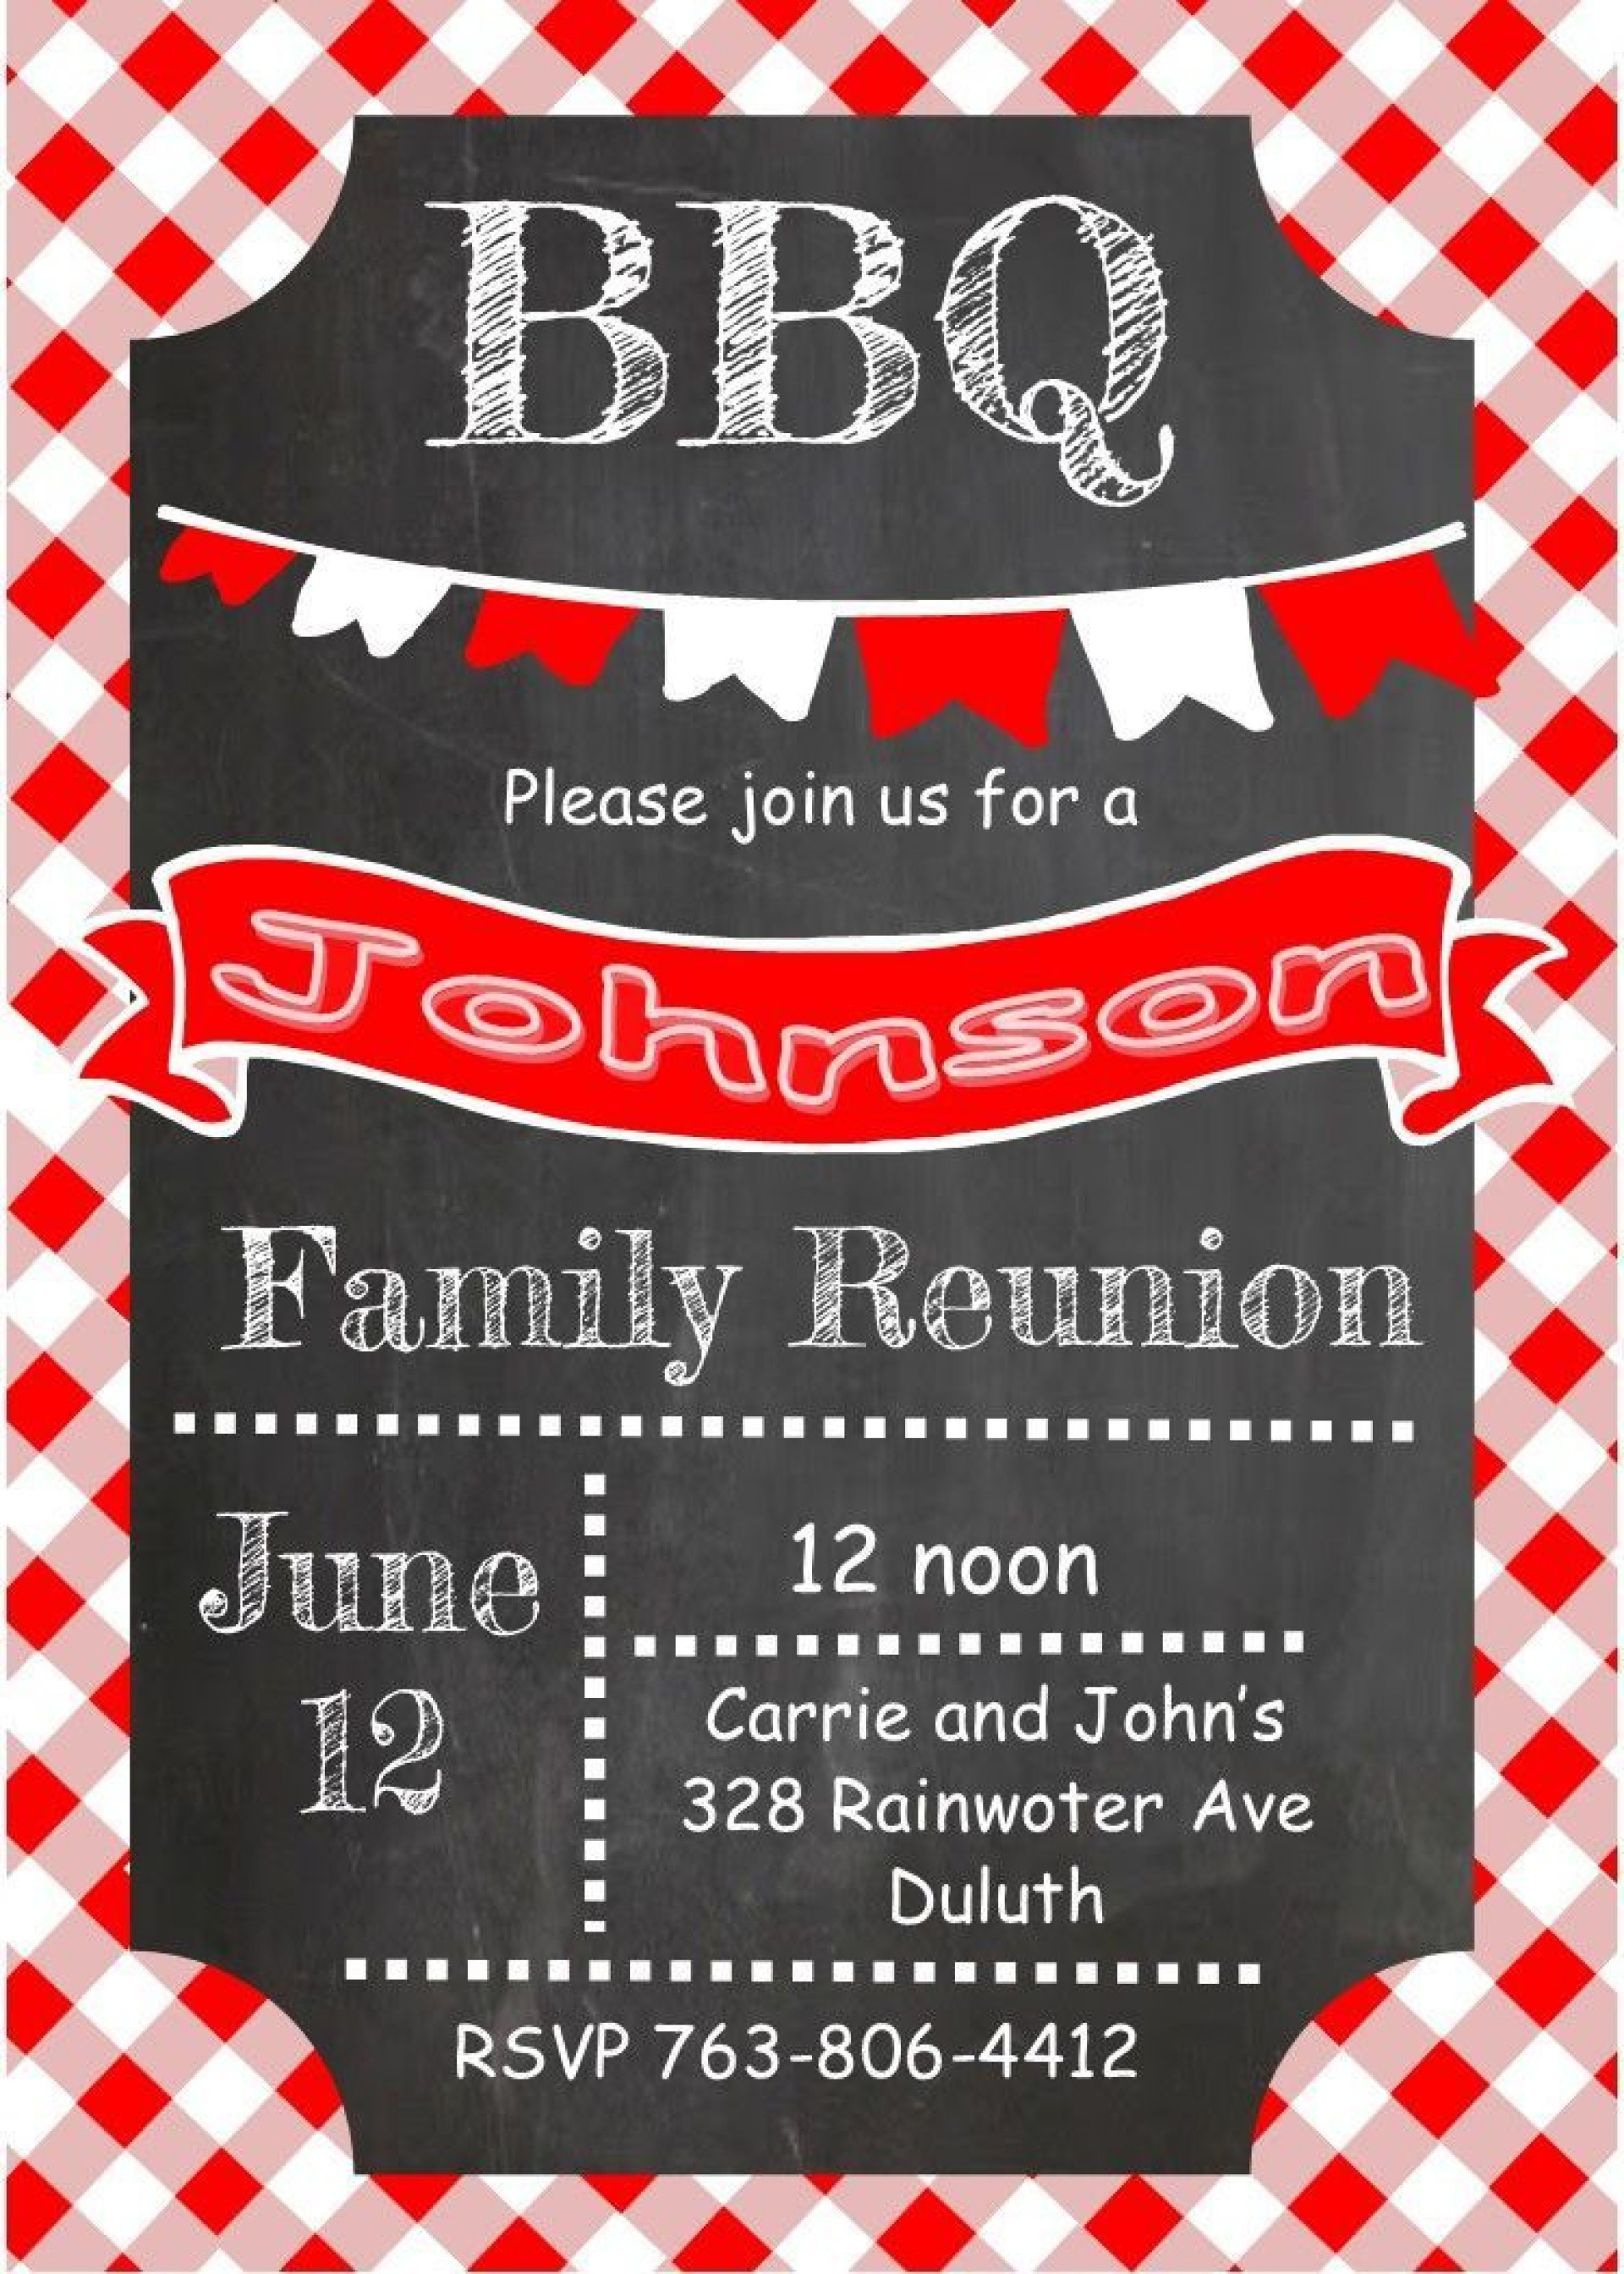 001 Fascinating Free Family Reunion Flyer Template Word High Resolution 1920